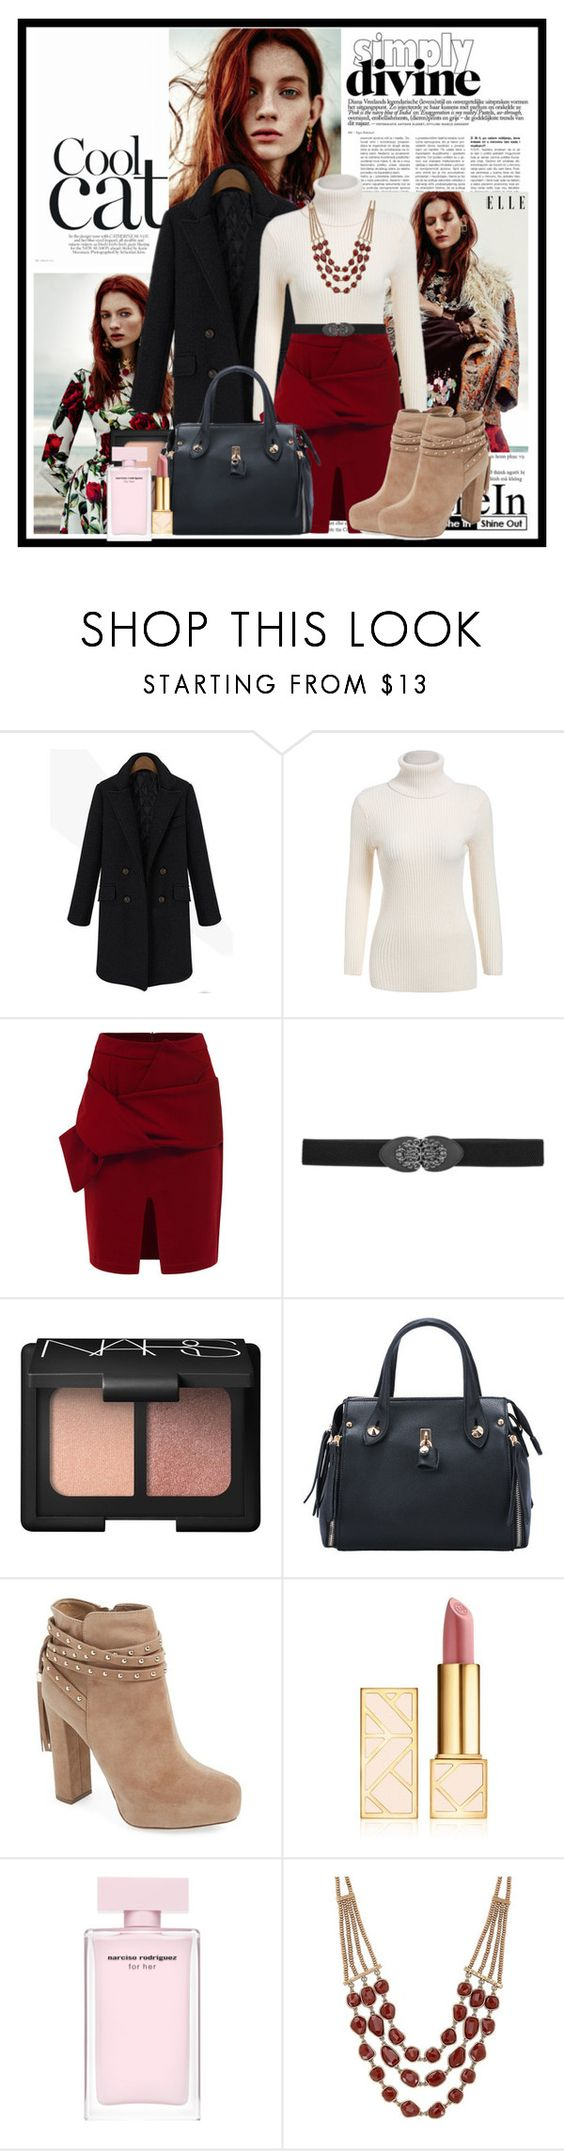 """""""Simply divine...."""" by cindy88 ❤ liked on Polyvore featuring maurices, NARS Cosmetics, Jessica Simpson, Tory Burch and Lucky Brand"""